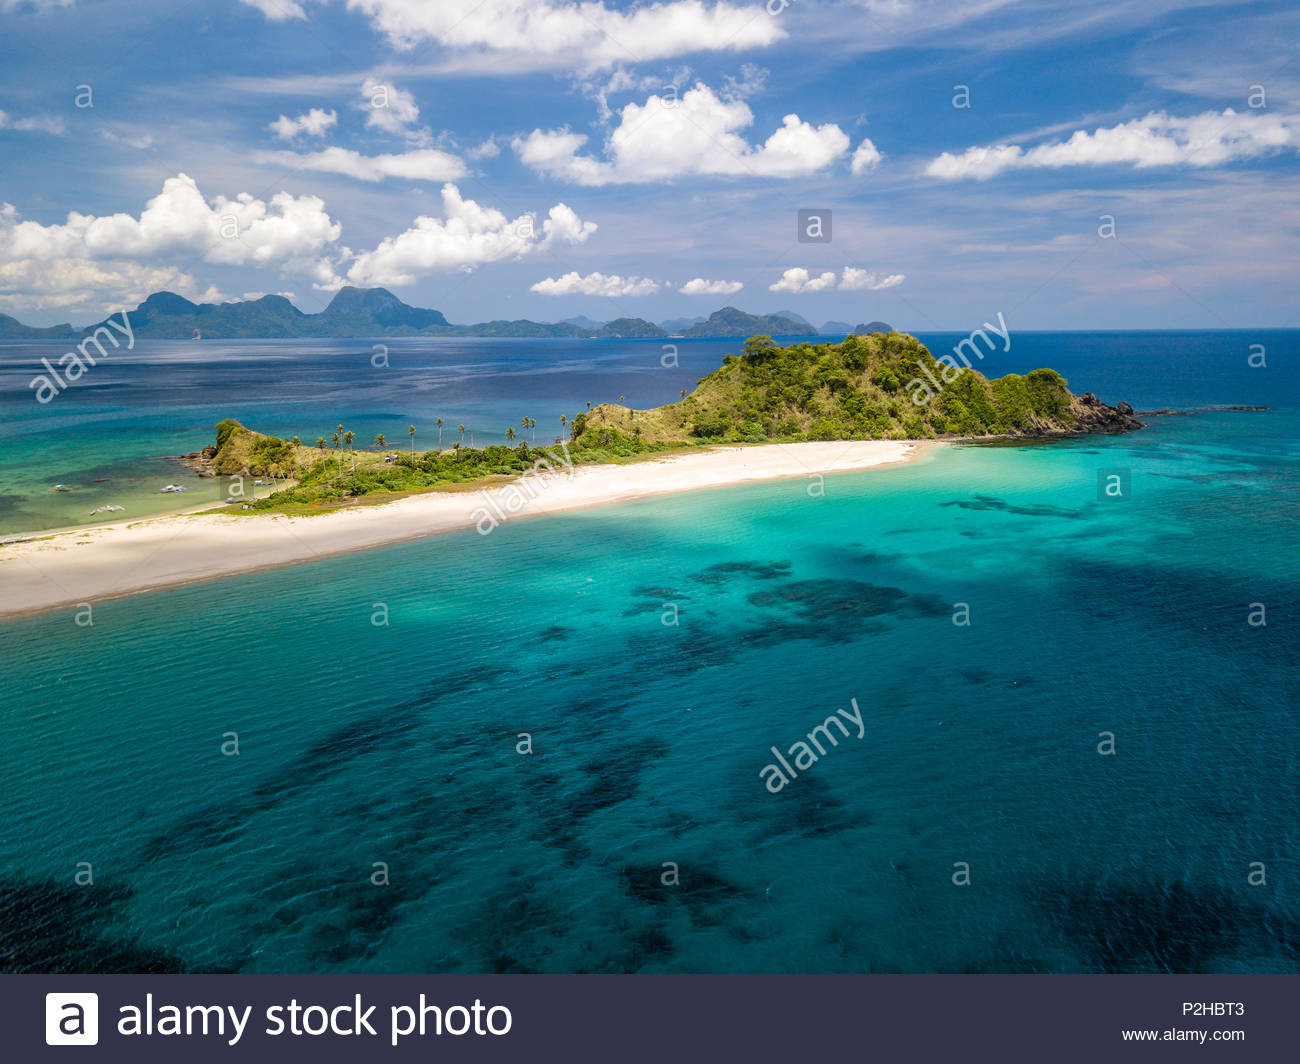 Aerial drone view of an empty, beautiful tropical beach surrounded by coral reef and greenery (Nacpan Beach, Palawan) - Stock Image